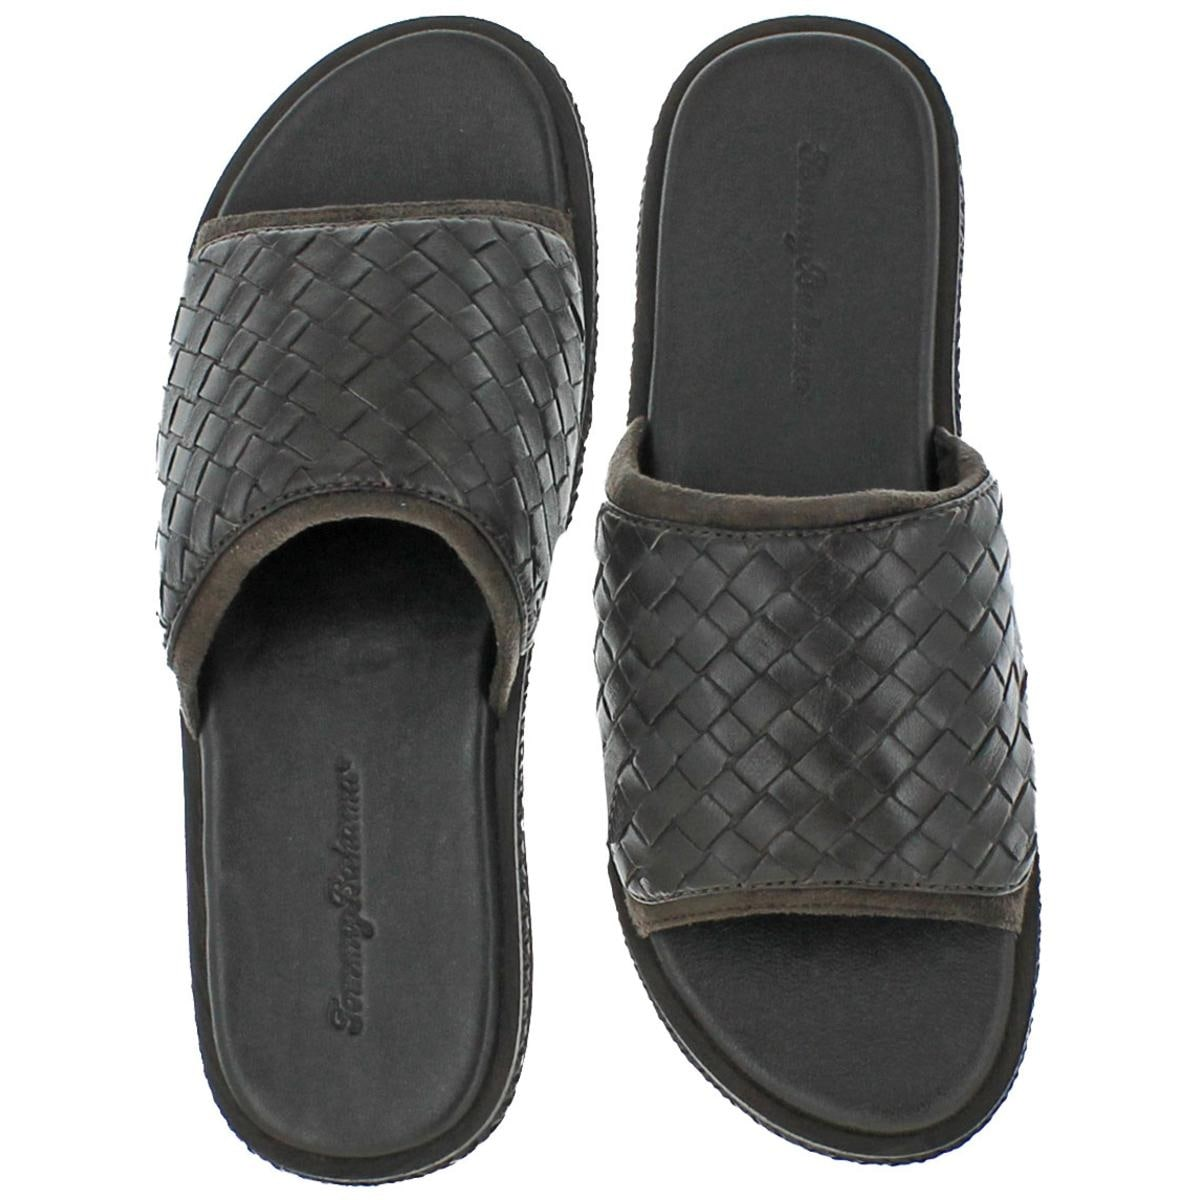 3c91964e028f9c Shop Tommy Bahama Mens Land Crest Slide Slide Sandals Casual Summer - 10  medium (d) - Free Shipping Today - Overstock - 22985296